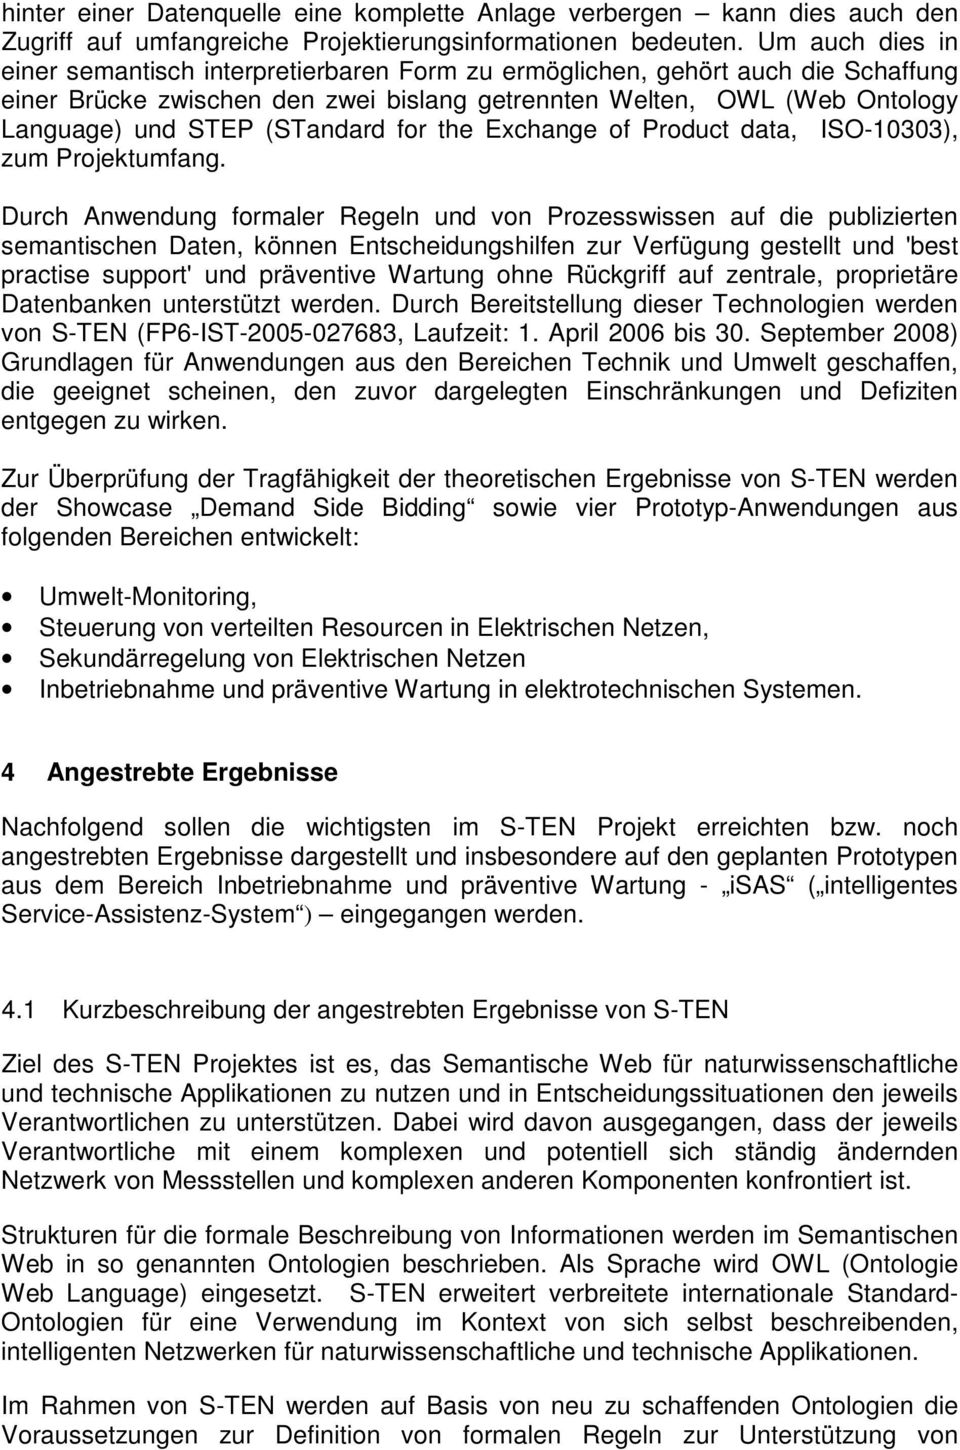 (STandard for the Exchange of Product data, ISO-10303), zum Projektumfang.